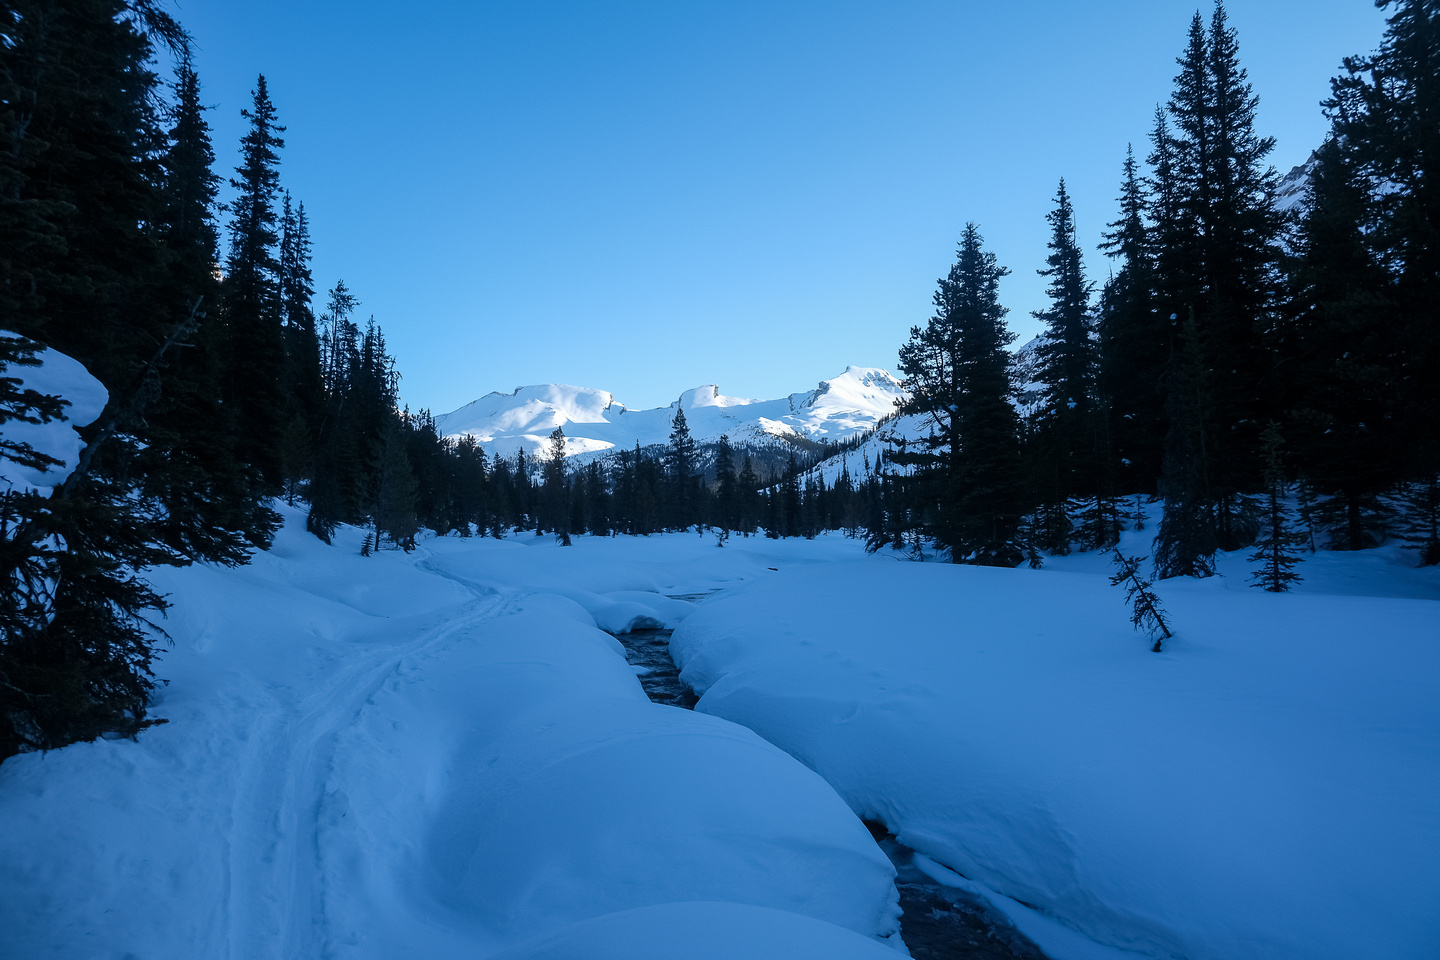 Skiing up the Mosquito Creek trail.